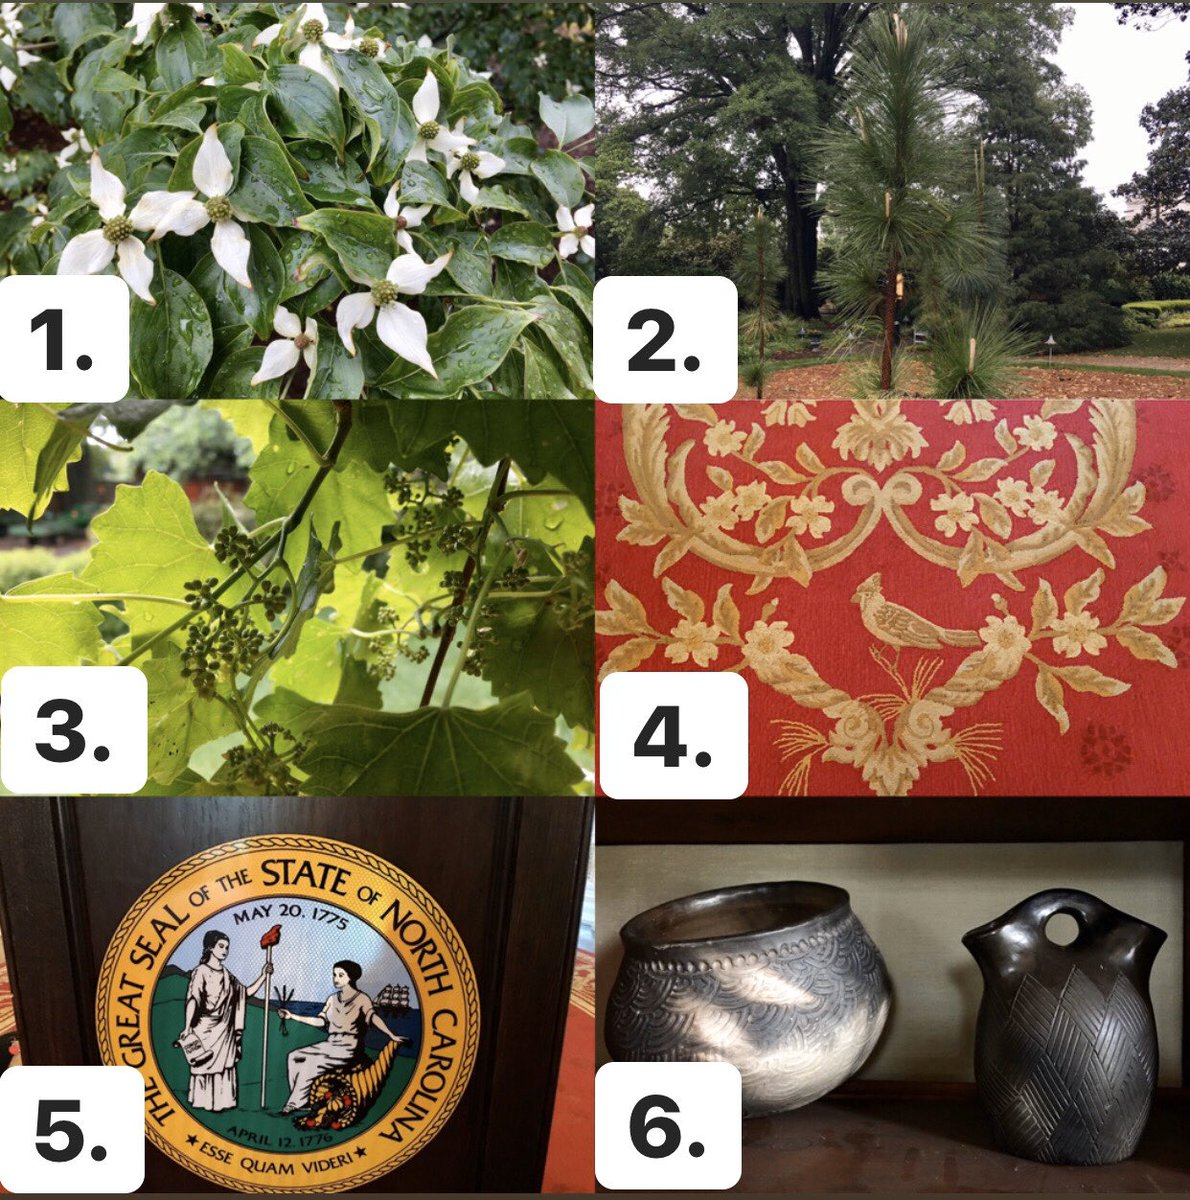 Kristin Cooper On Twitter We Re Joining The Ncsymbolsparty Can You Name These North Carolina State Symbols Found At The Nc Executive Mansion Ncstatecapitol Nchistoricsites Https T Co C2mjpvi9hy